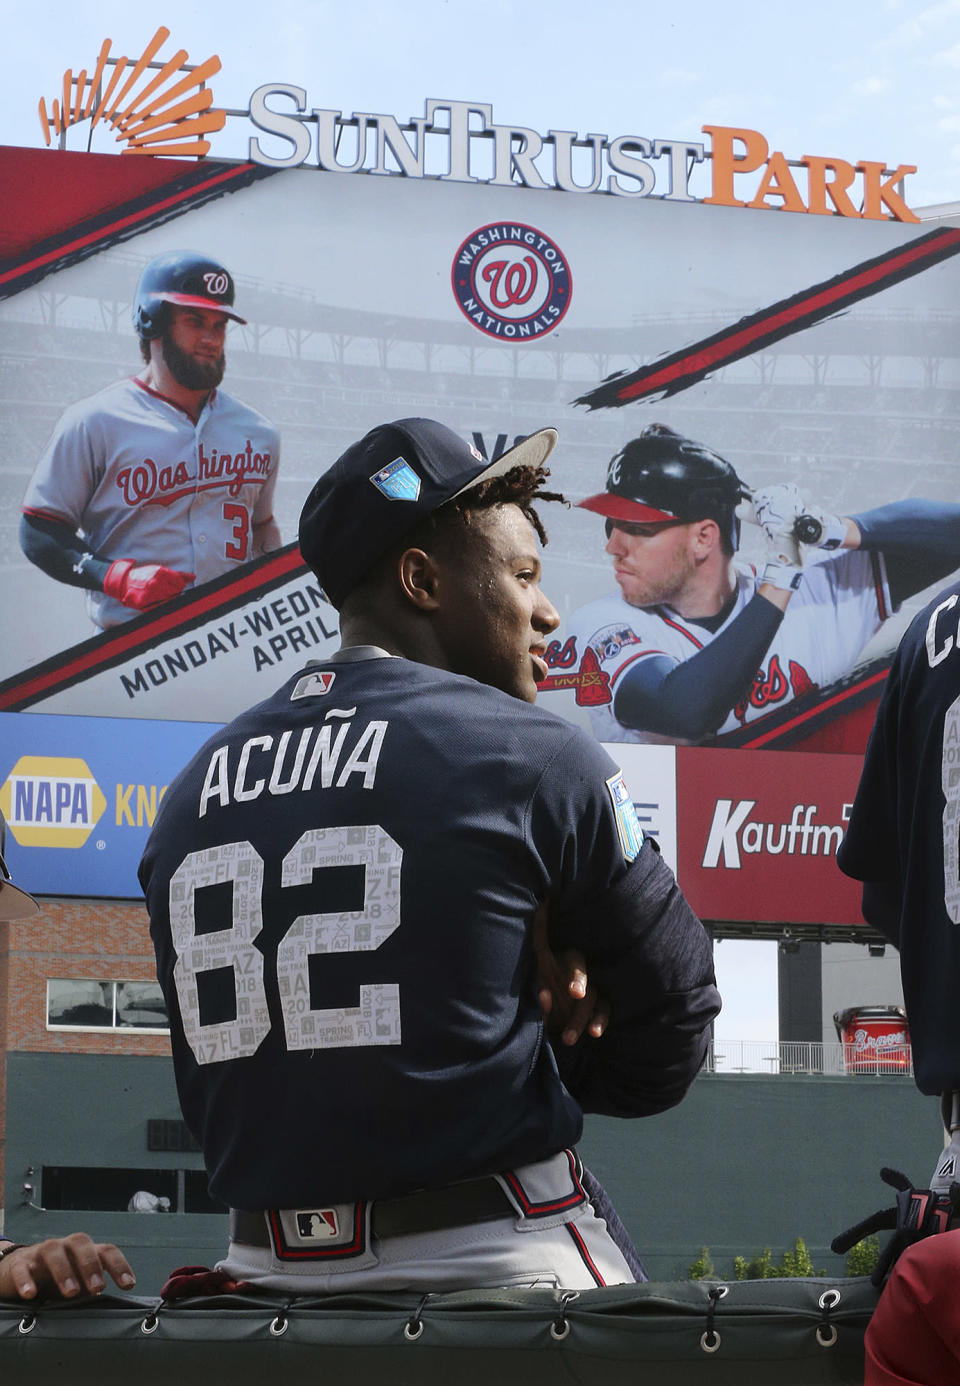 """Atlanta Braves prospect Ronald Acuna Jr., takes in the scene as he prepares to play for the """"Future Stars"""" team in an exhibition baseball game against the Atlanta Braves on Tuesday, March 27, 2018, in Atlanta. (Curtis Compton/Atlanta Journal-Constitution via AP)"""